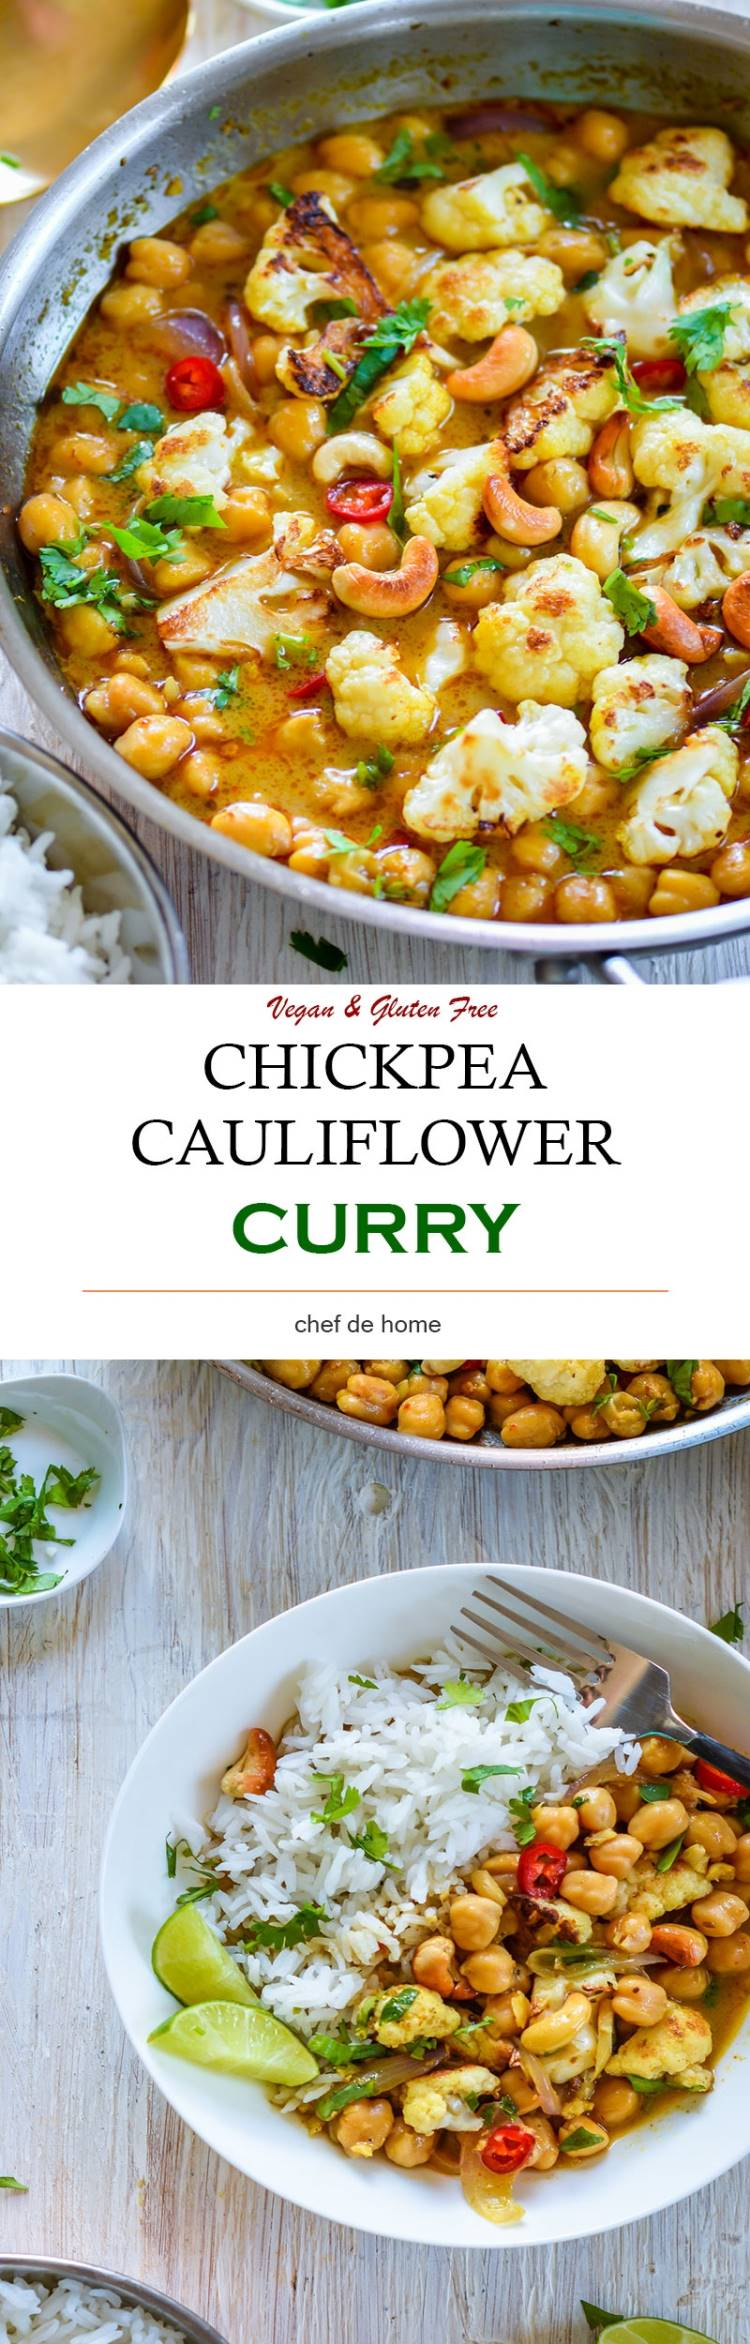 Chickpeas and Cauliflower Curry with basmati rice for dinner | chefdehome.com